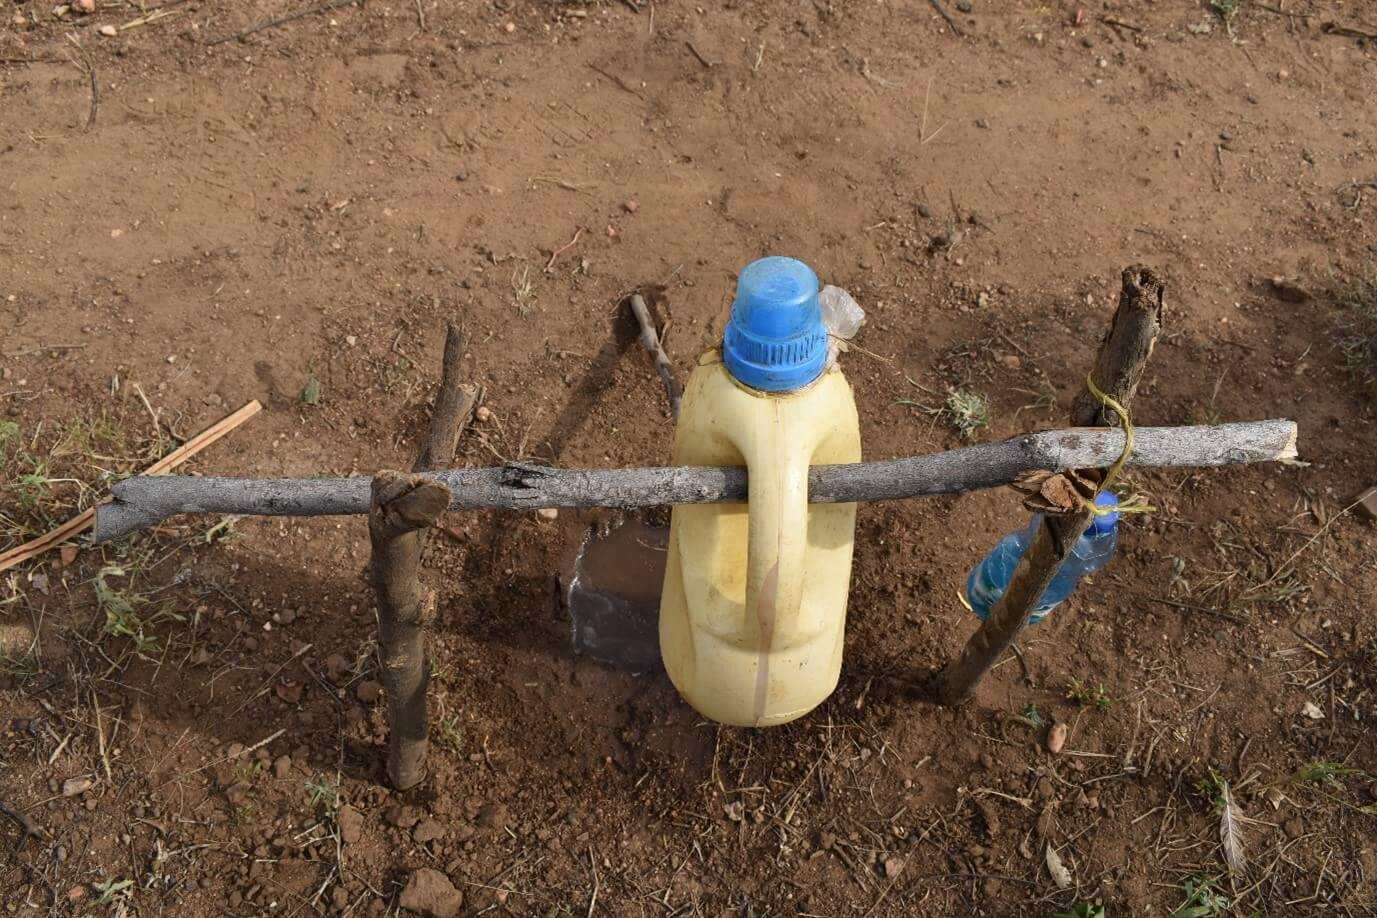 The home-made tap was made out of recycled household items. Photo : Denis Kioko / Trócaire.